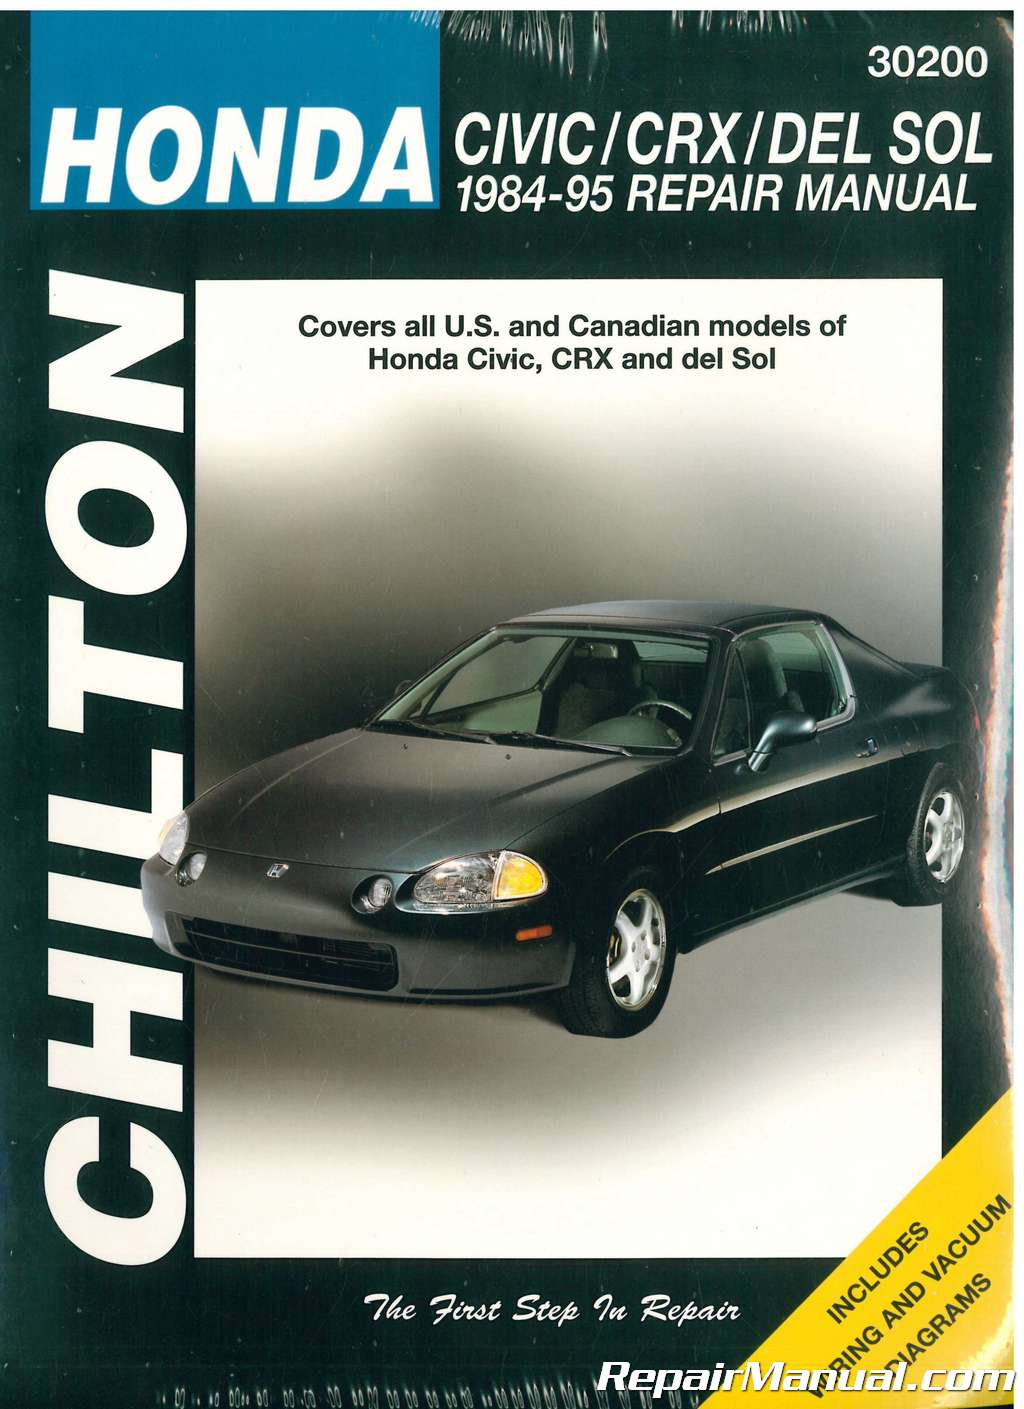 1997 Honda Del Sol Electrical System Wiring Diagram Download